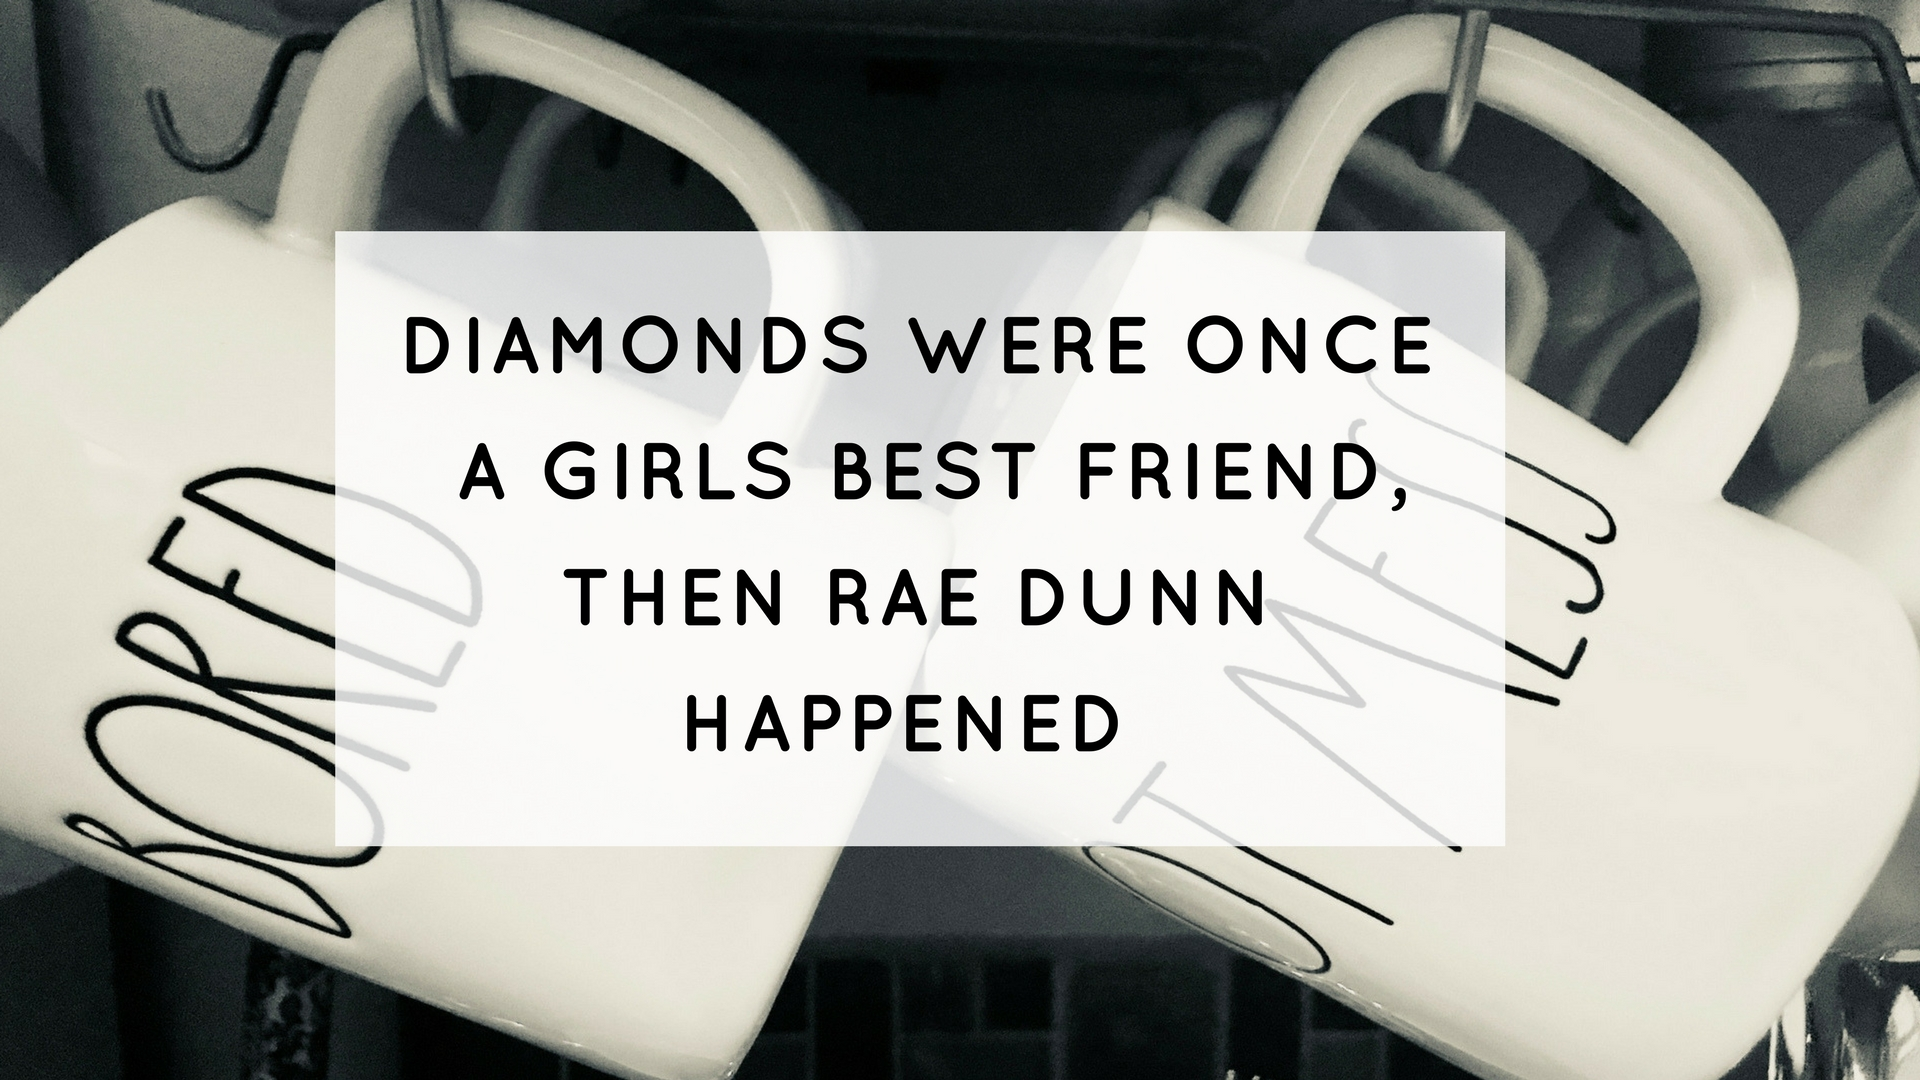 DIAMONDS USED TO BE A GIRLD BEST FRIEND, THEN RAE DUNN HAPPENED!